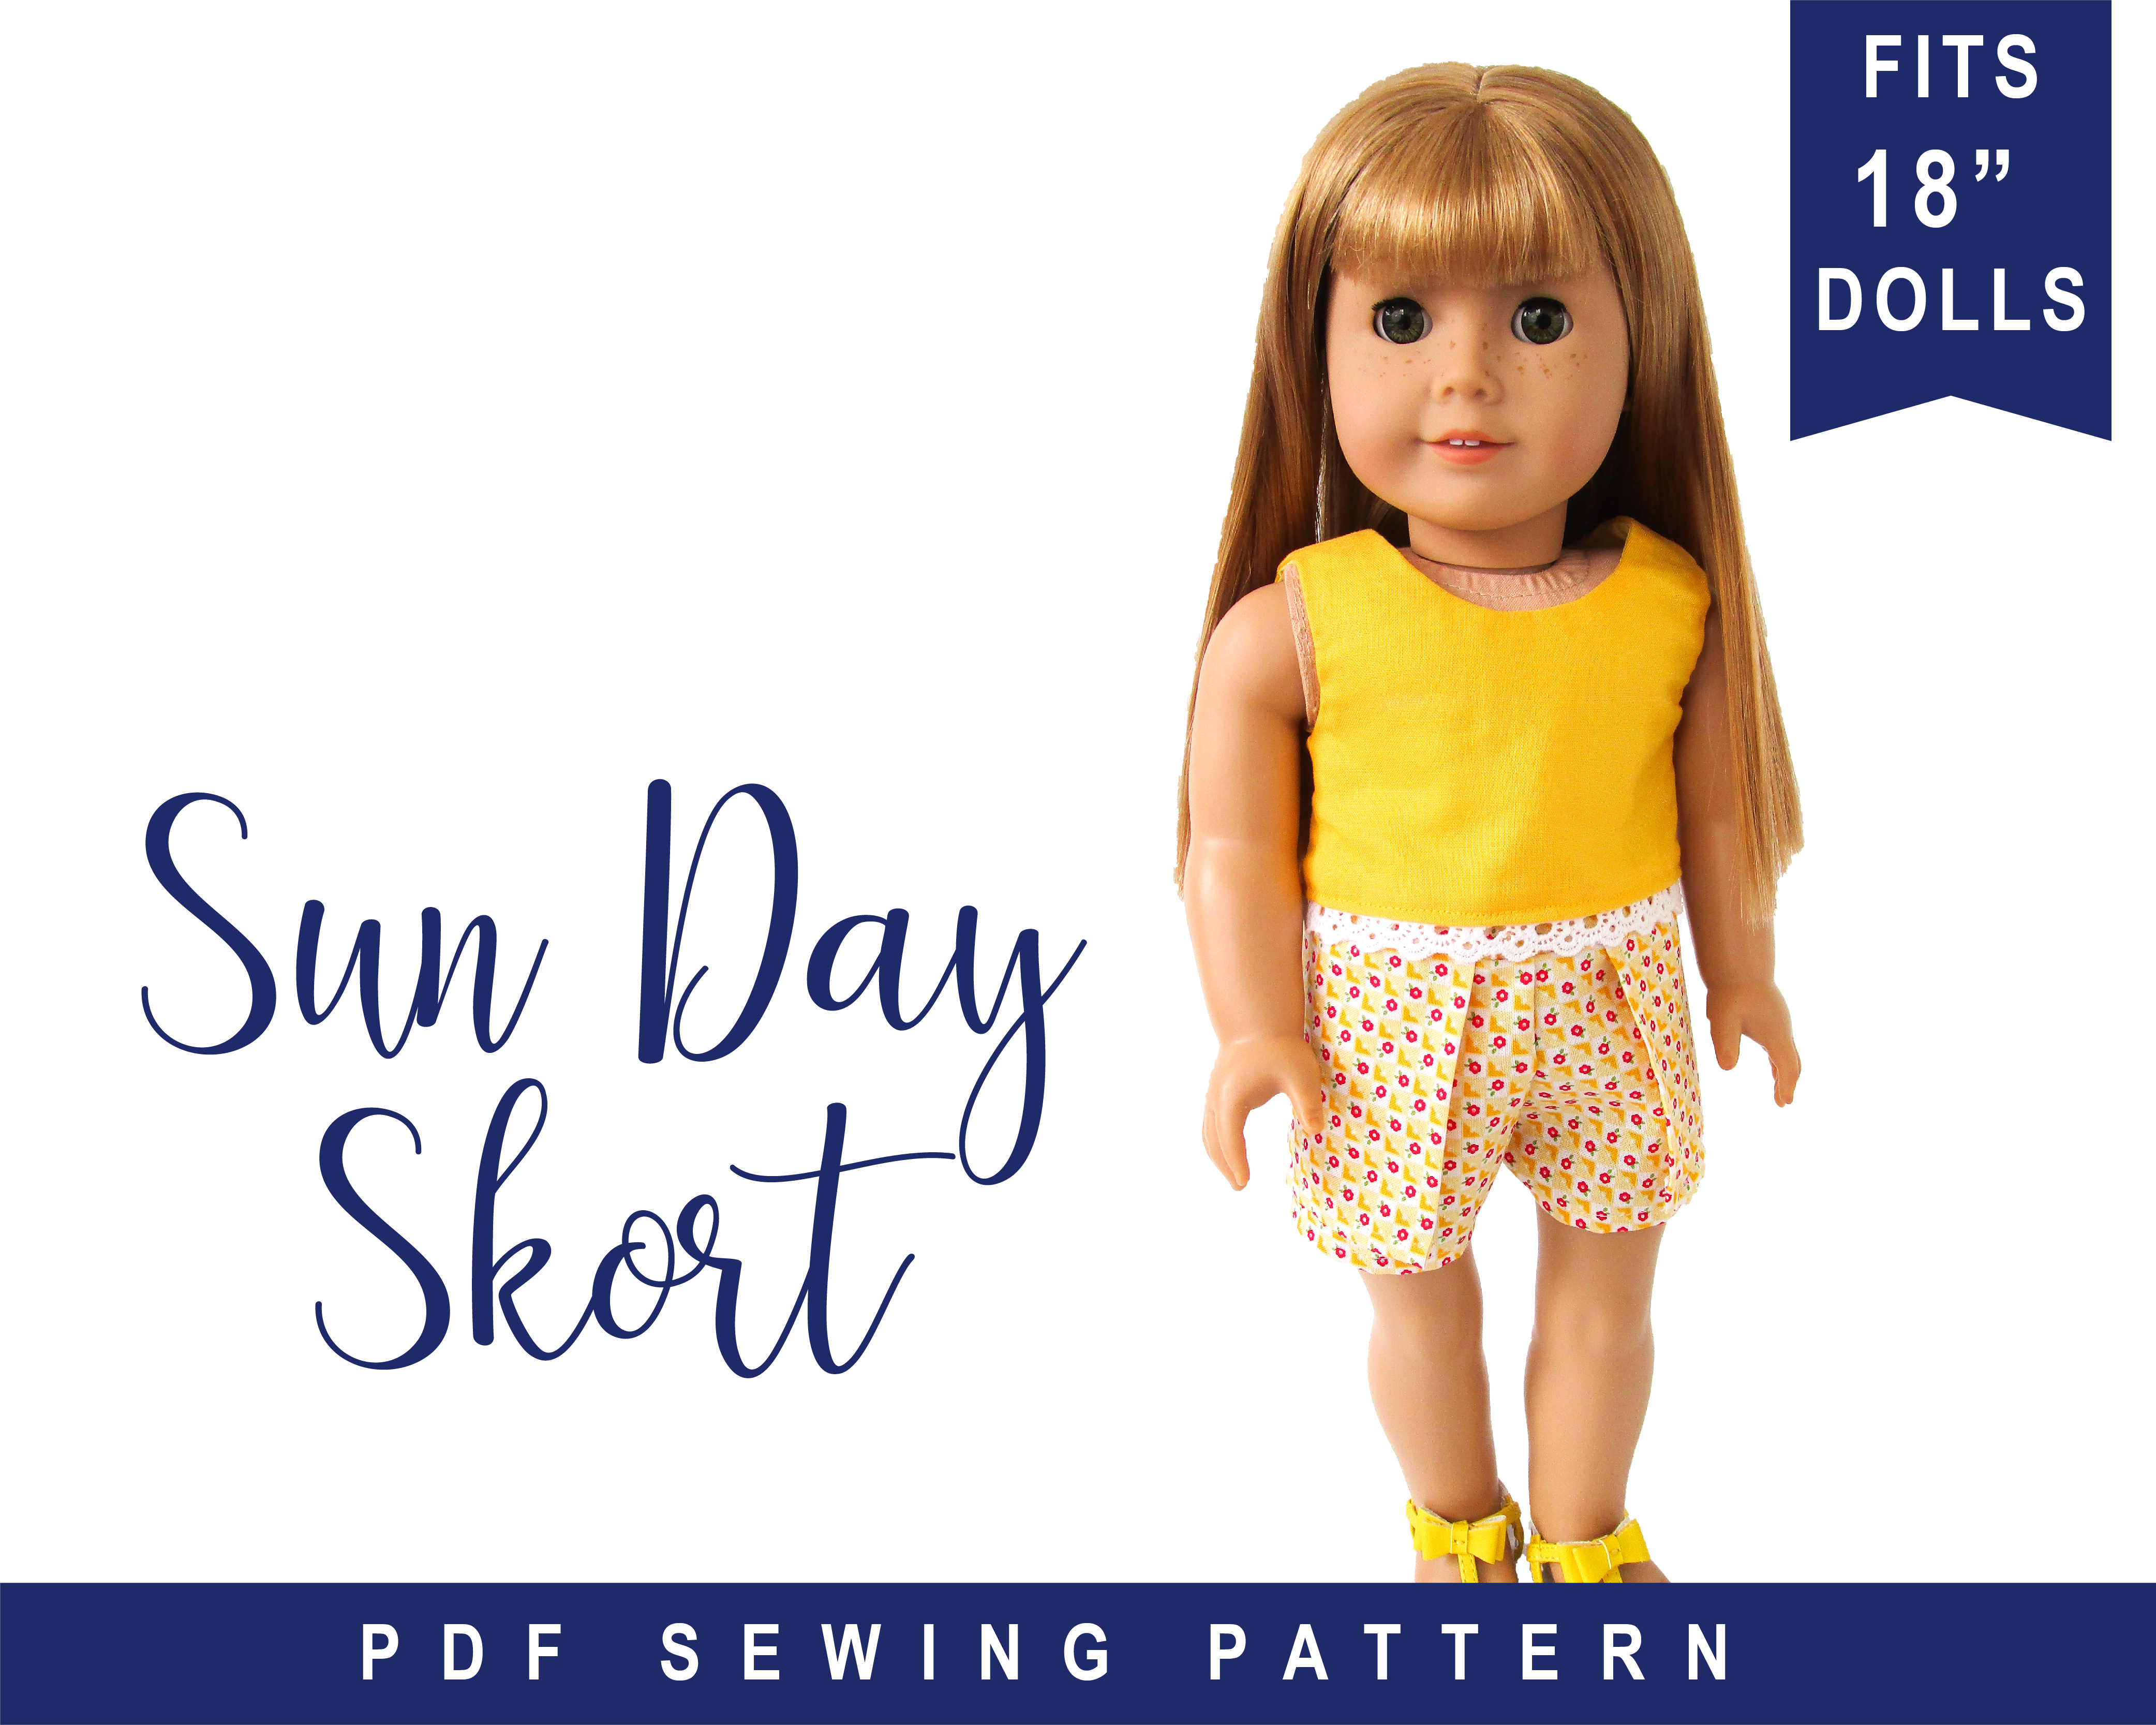 Get your doll ready for the warm weather with the quick and easy Sun Day Skort PDF sewing pattern for 18 inch dolls. Find more patterns from Oh Sew Kat! for DIY doll clothes and other fun doll crafts and tutorials.